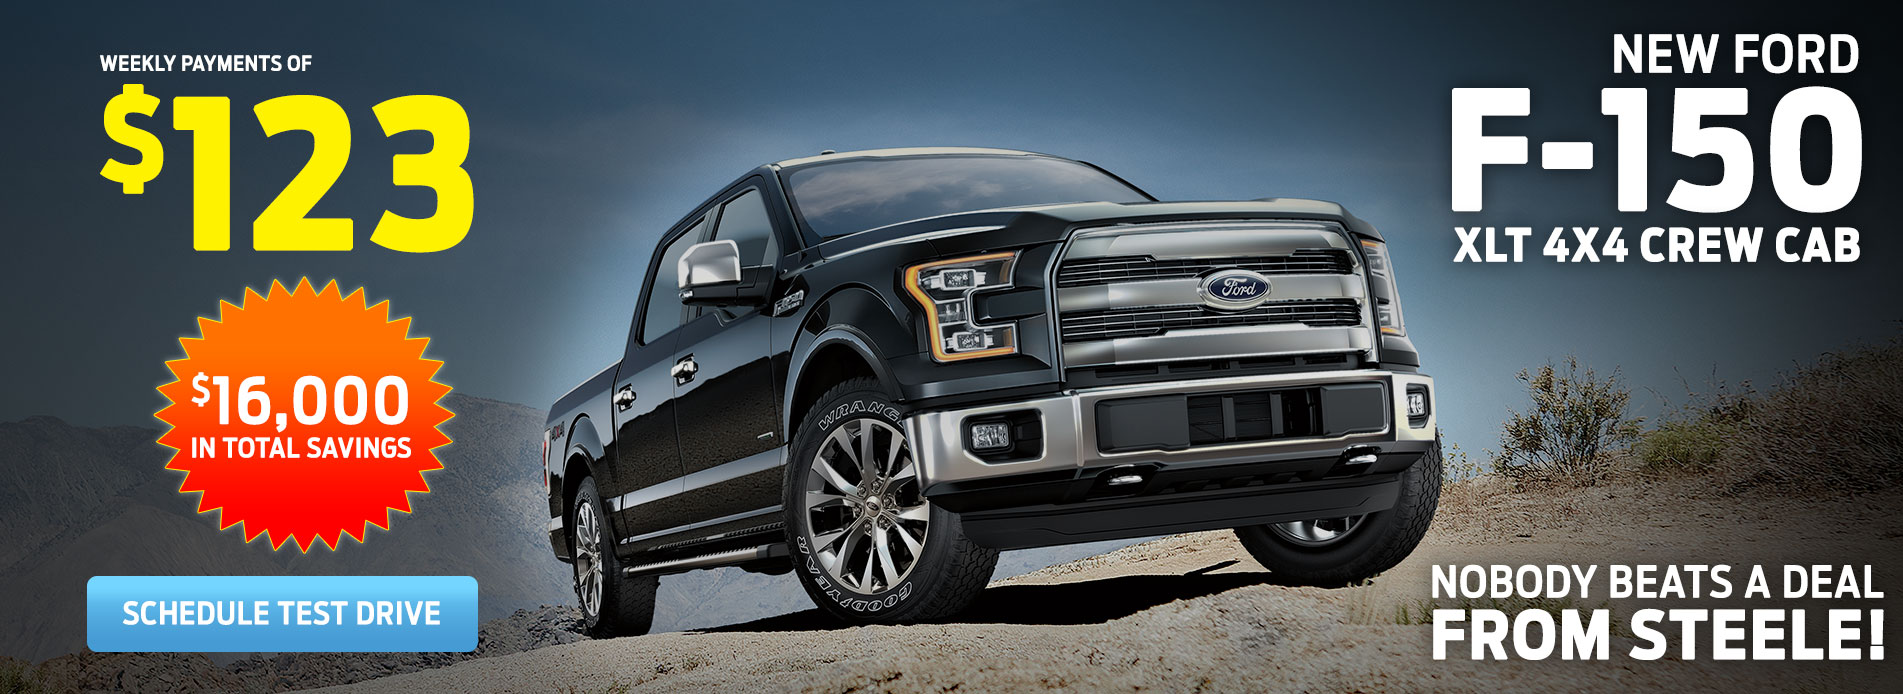 2016 ford truck for sale